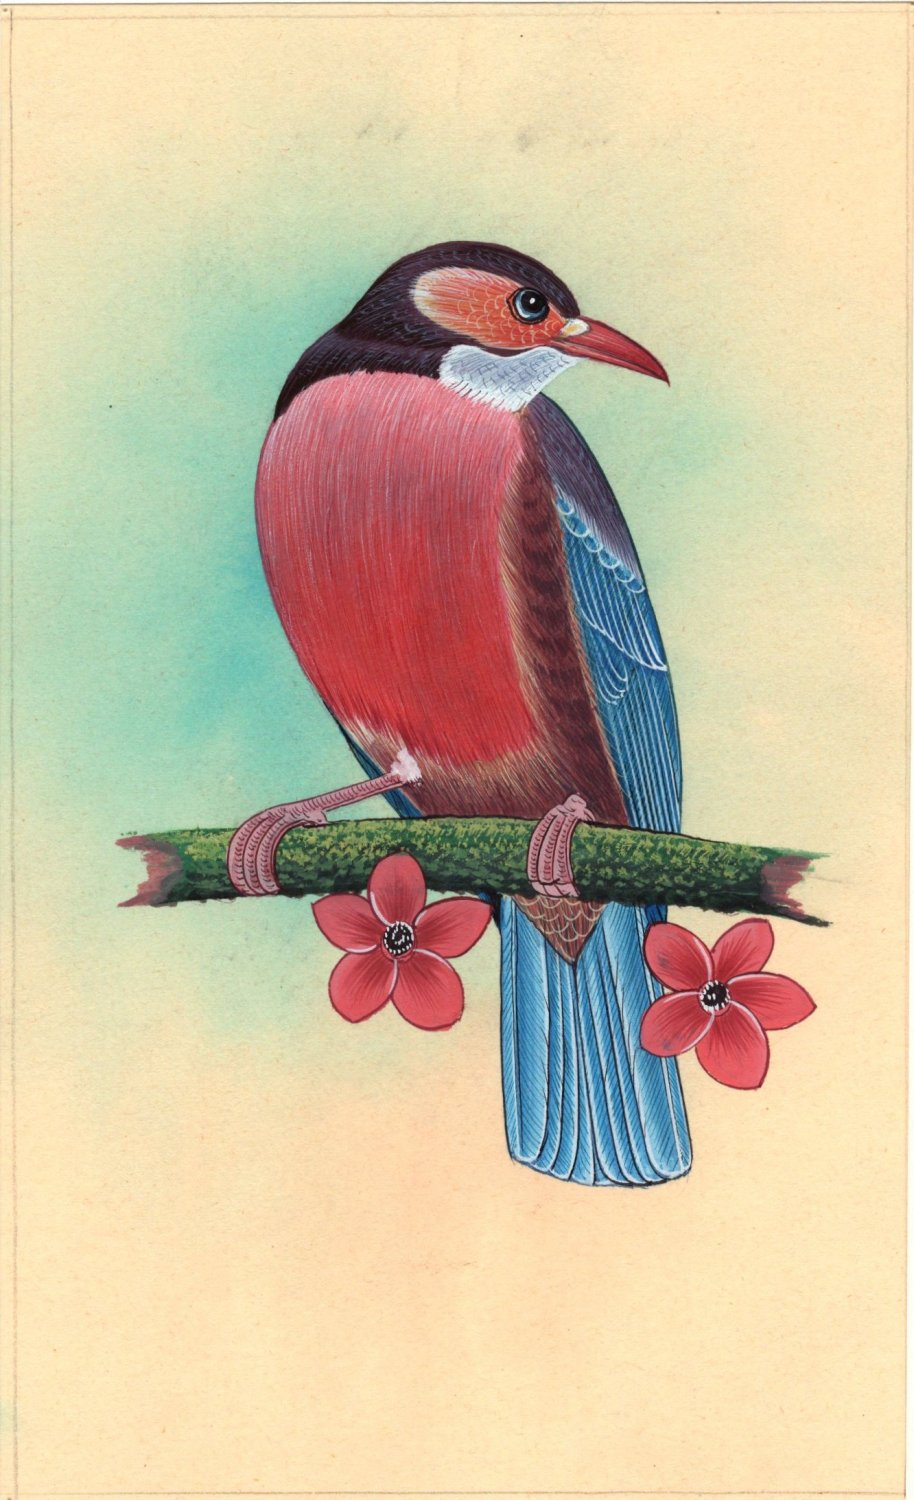 Red Breasted Bird Miniature Painting Handmade Indian Nature Decor Ethnic Art